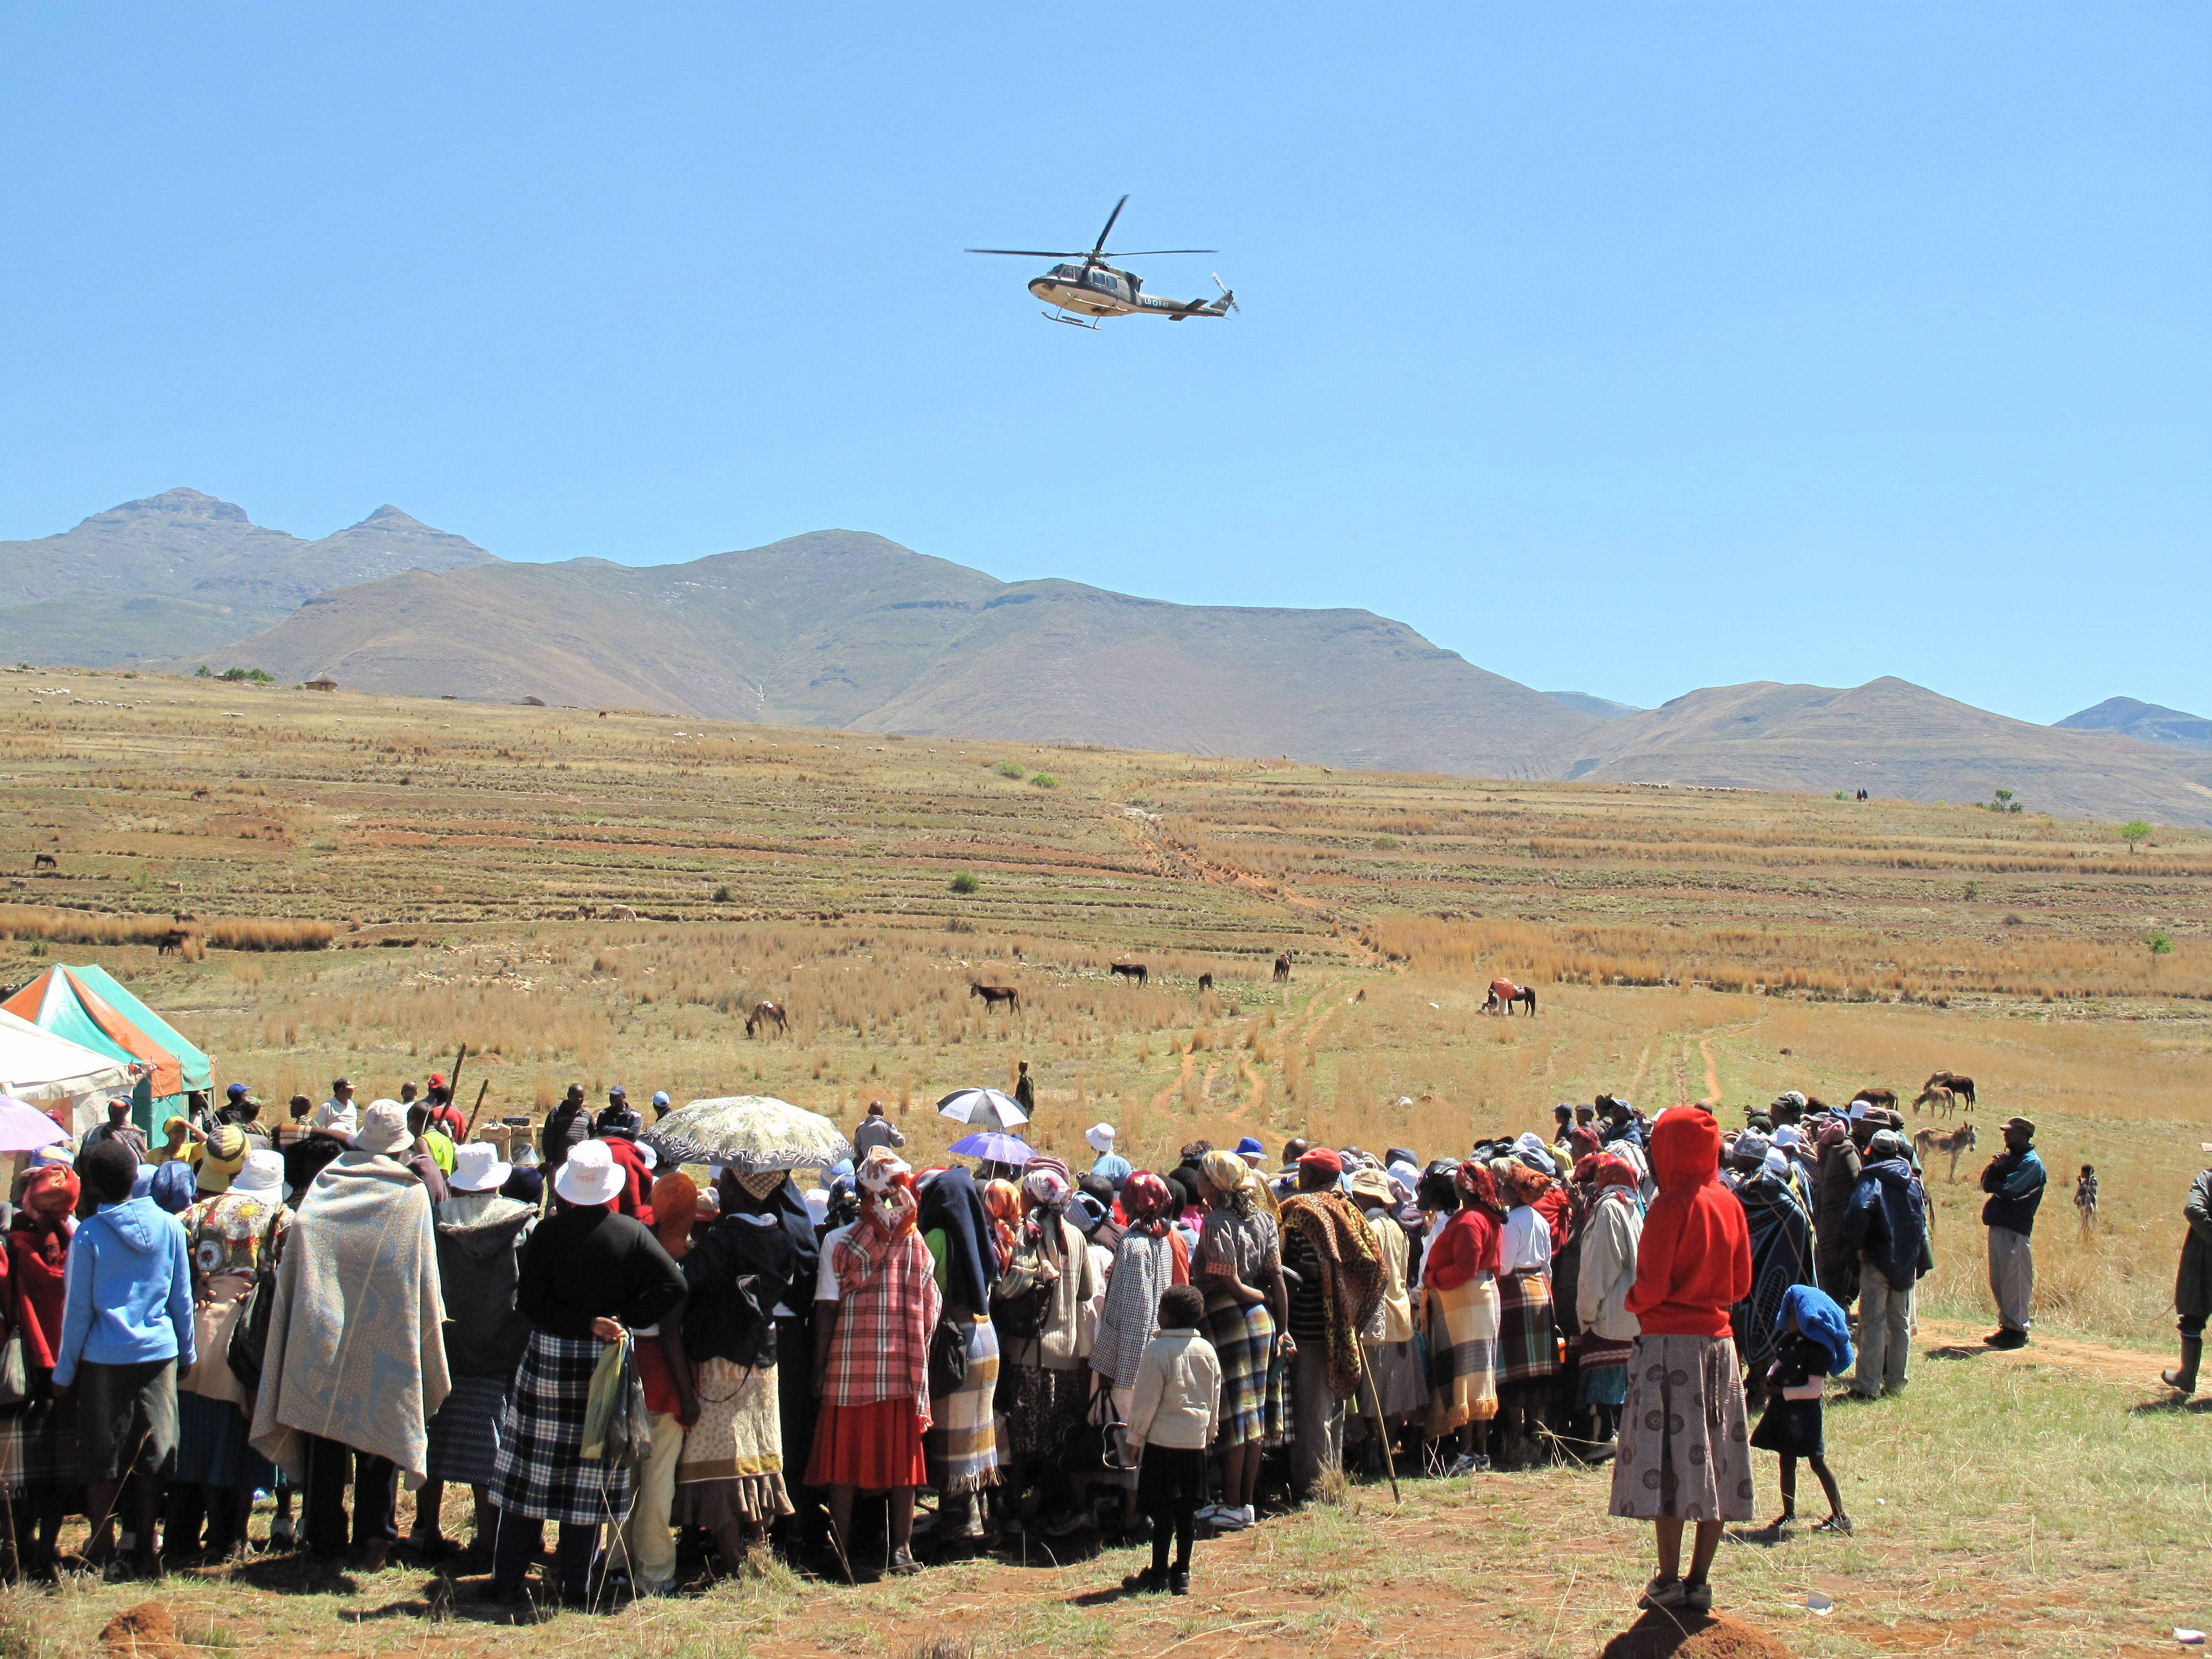 Some 400 Km from the capital Maseru in Thaba Khubelu, a tiny village in the mountainous district of Qacha's Nek - one of the most remote areas in Lesotho - some 250 households, eagerly watched as a military helicopter touched down to deliver their first